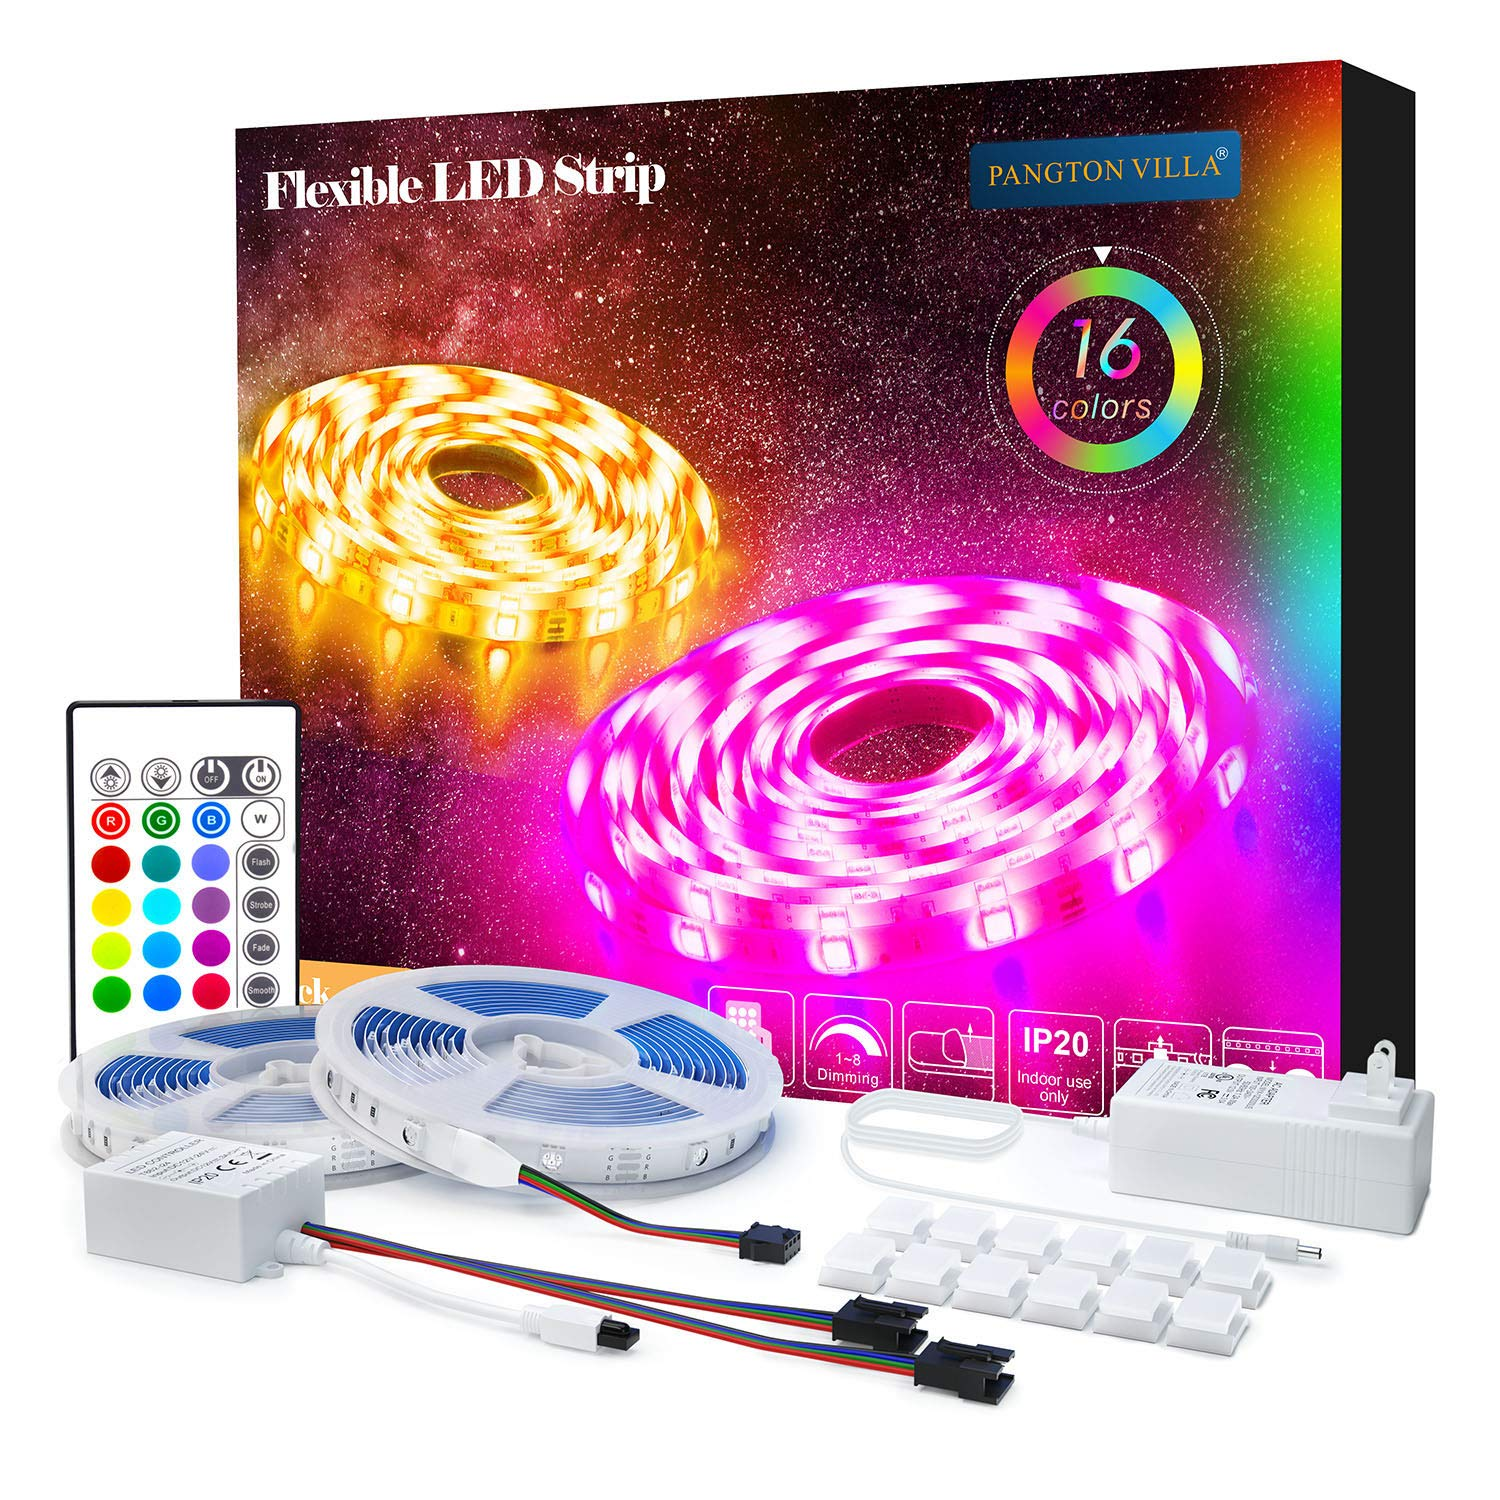 PANGTON VILLA LED Strip Lights 32.8ft, RGB 5050 LEDs Color Changing Kit with 24key Remote Control and Power Supply, Mood Lighting Led Strips for Home Kitchen Christmas Indoor Decoration